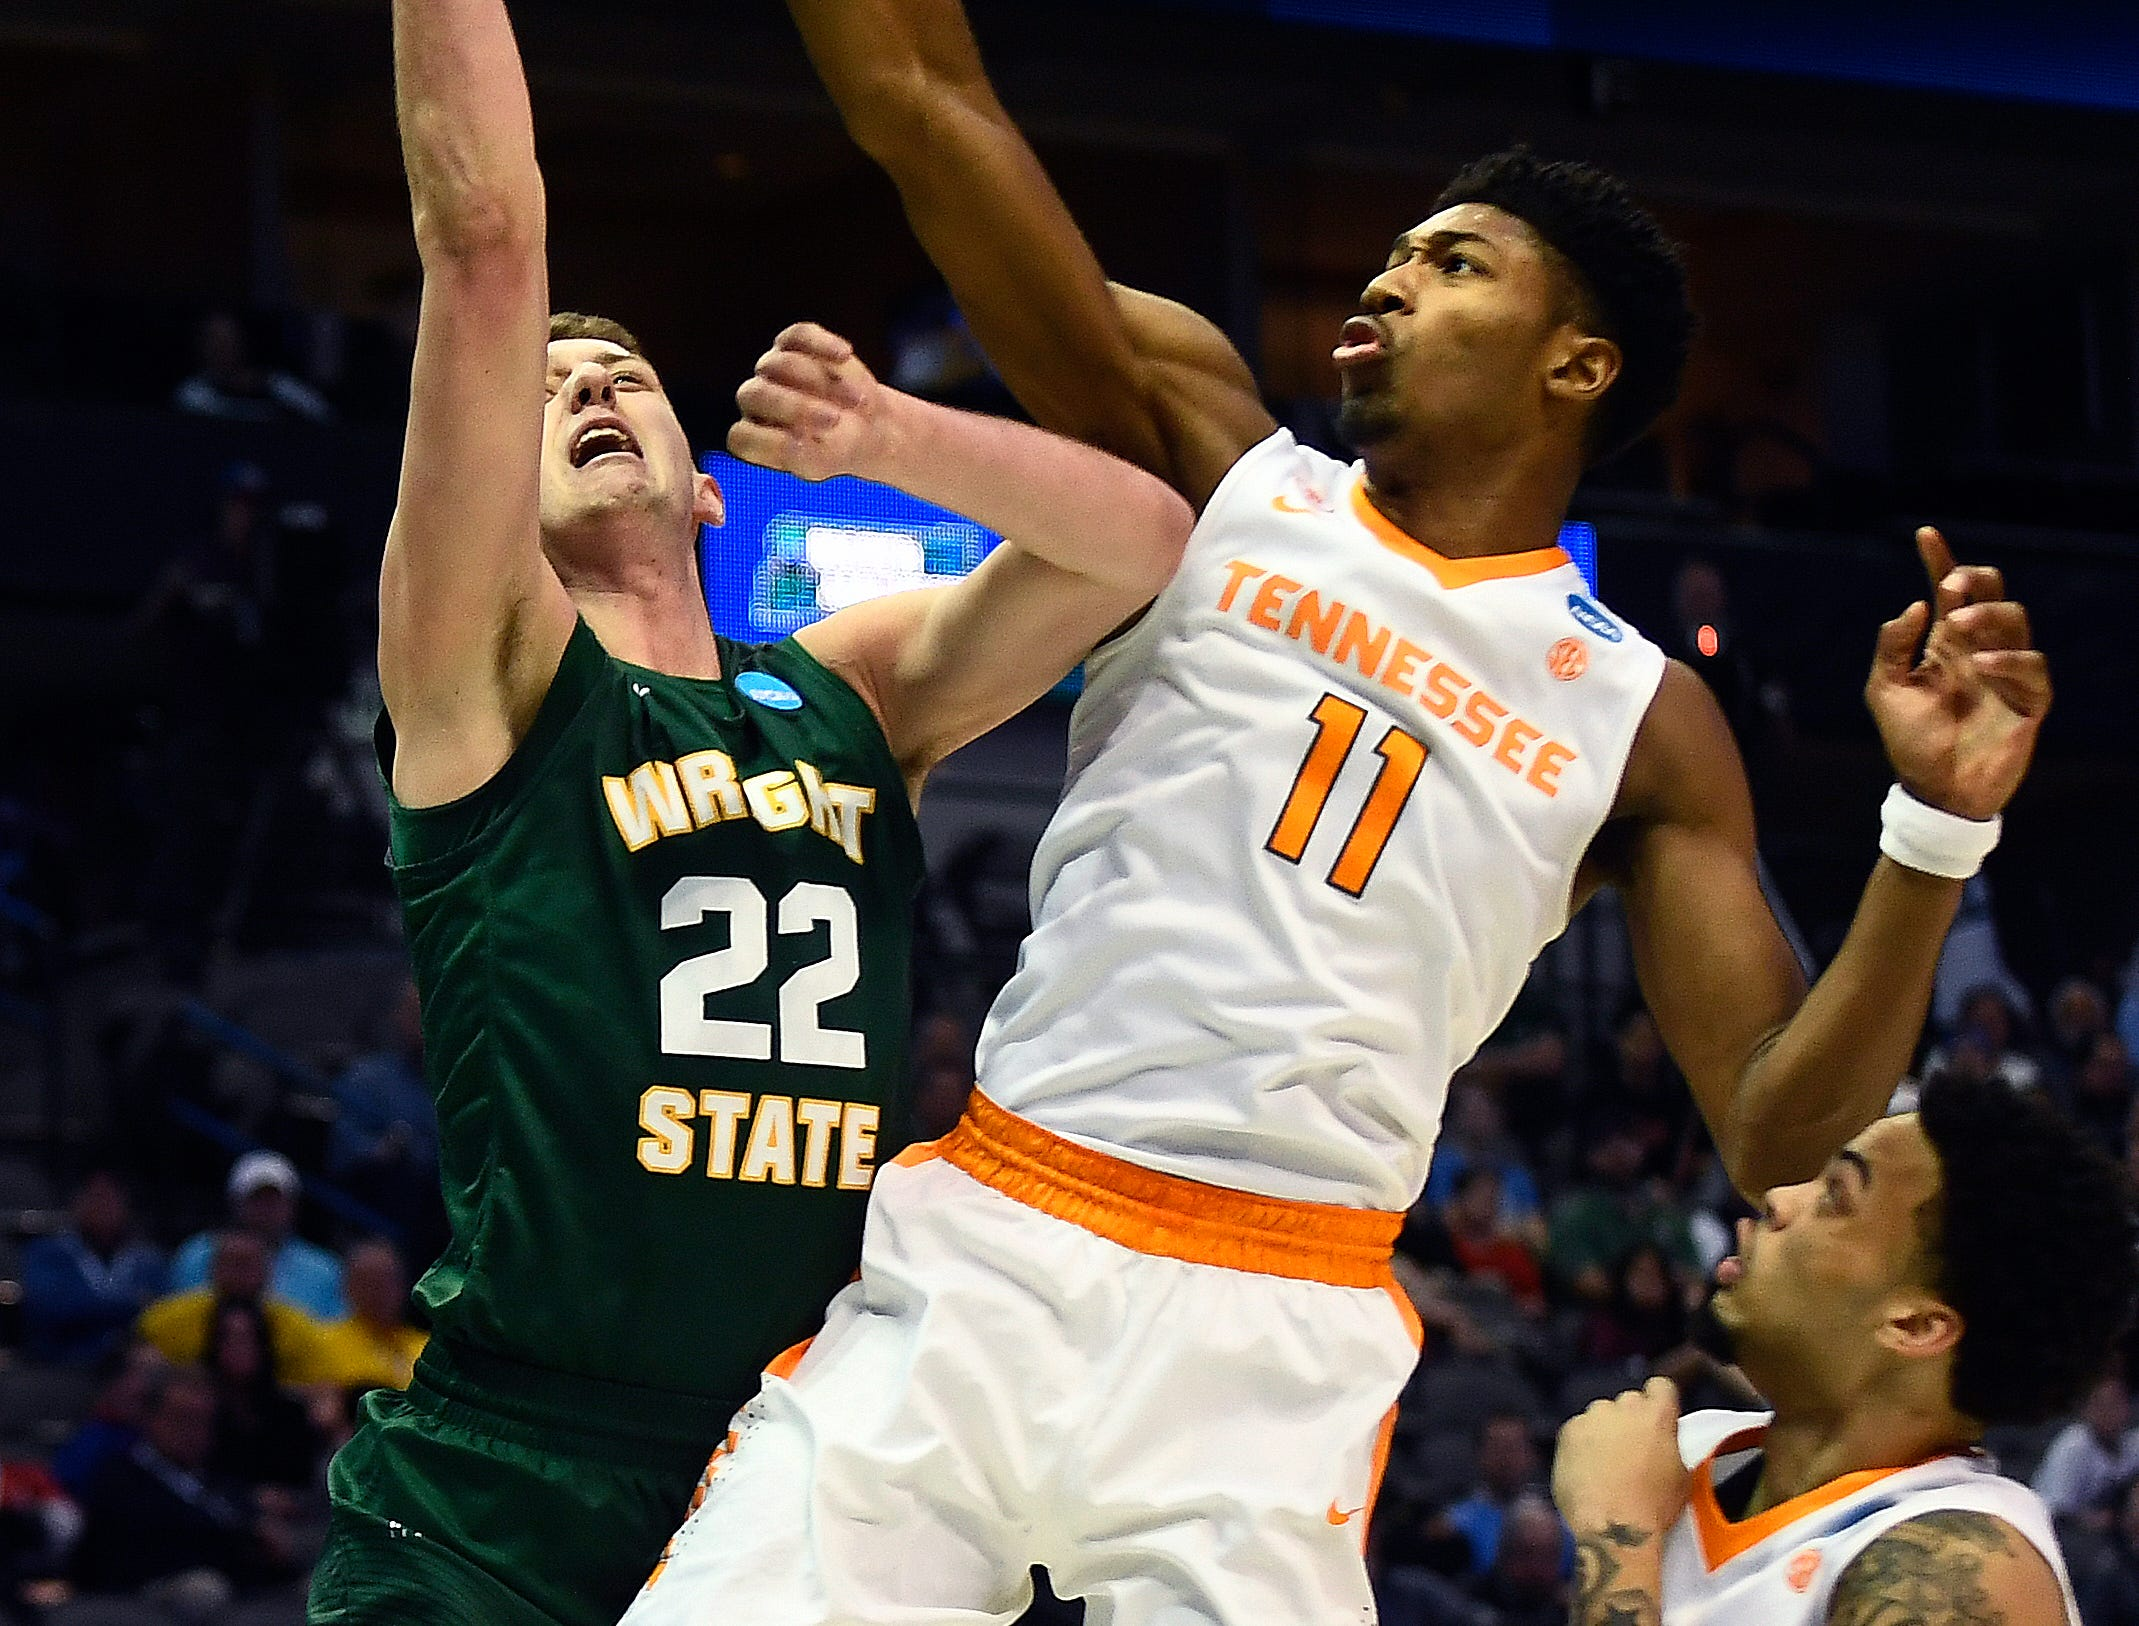 Tennessee forward Kyle Alexander (11) blocks a shot by Wright State center Parker Ernsthausen (22) during the NCAA Tournament first round game between Tennessee and Wright State at American Airlines Center in Dallas, Texas, on Thursday, March 15, 2018.